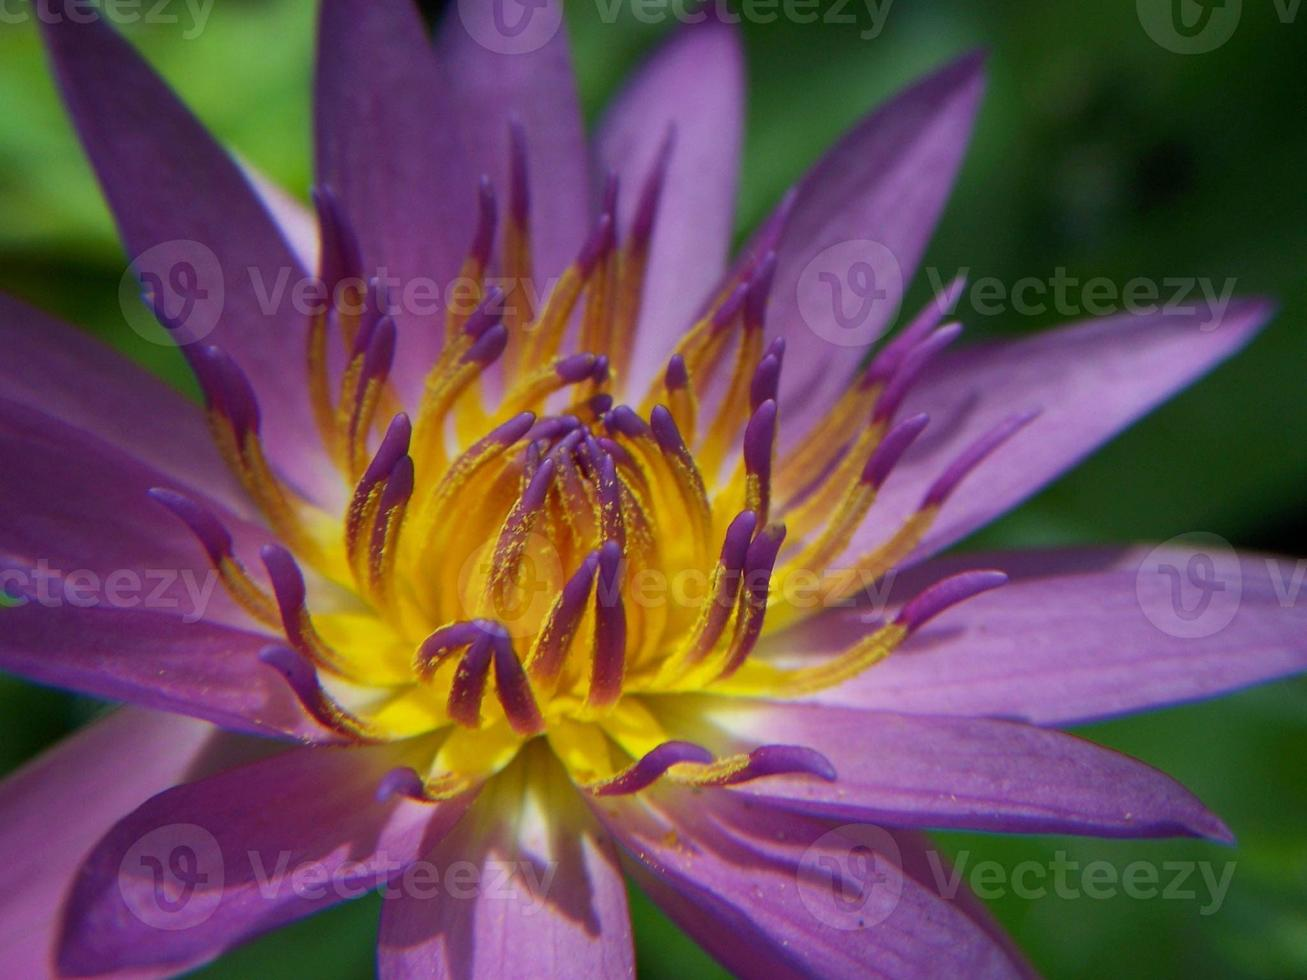 THE heart of the lotus photo